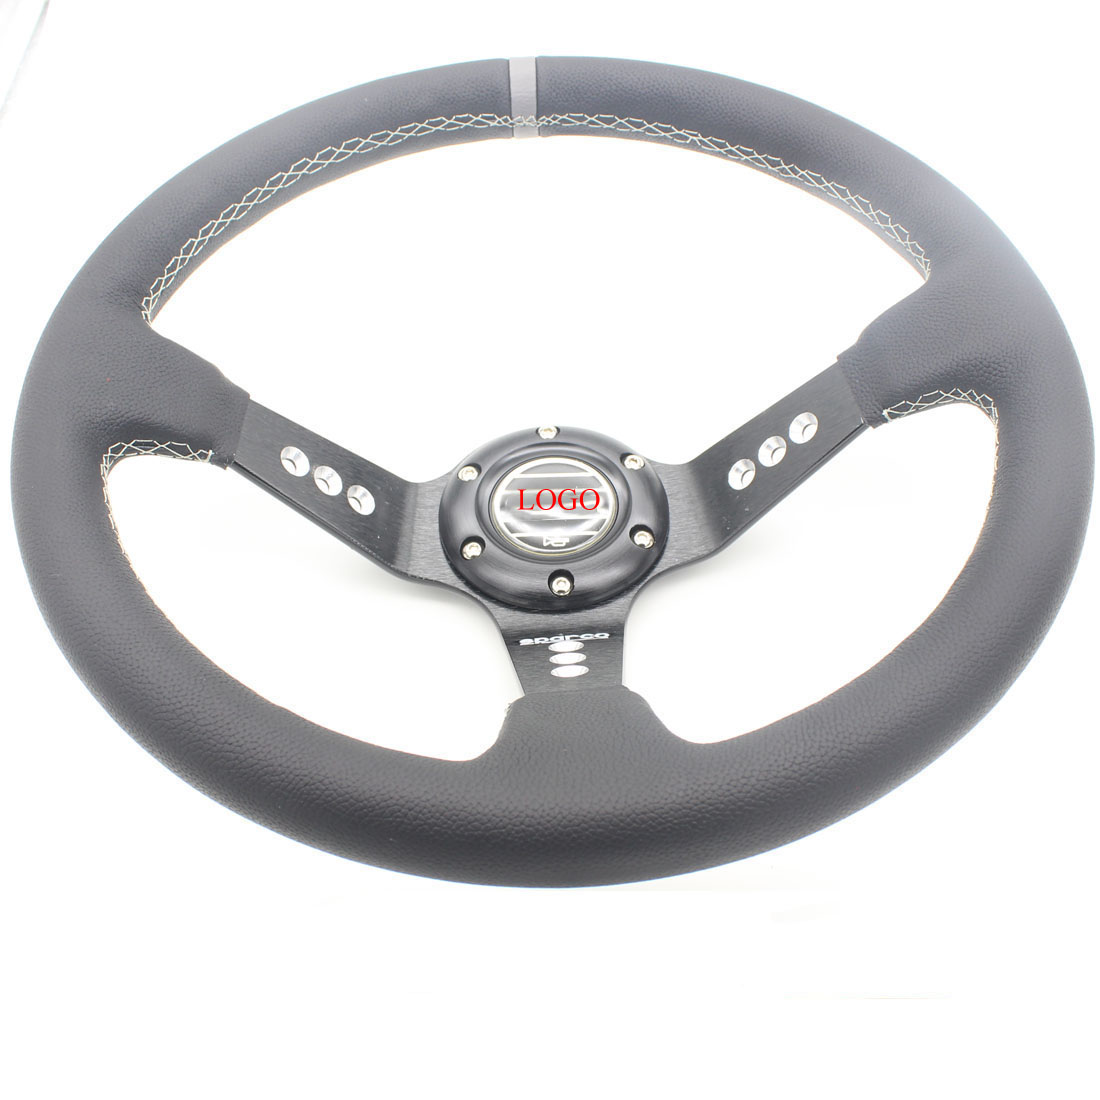 Dongzhen 14 355MM Auto Car Leather Deep Cone Steering Wheel Racing Sport Drift Handle Steering Wheel Accessories Car Styling<br><br>Aliexpress